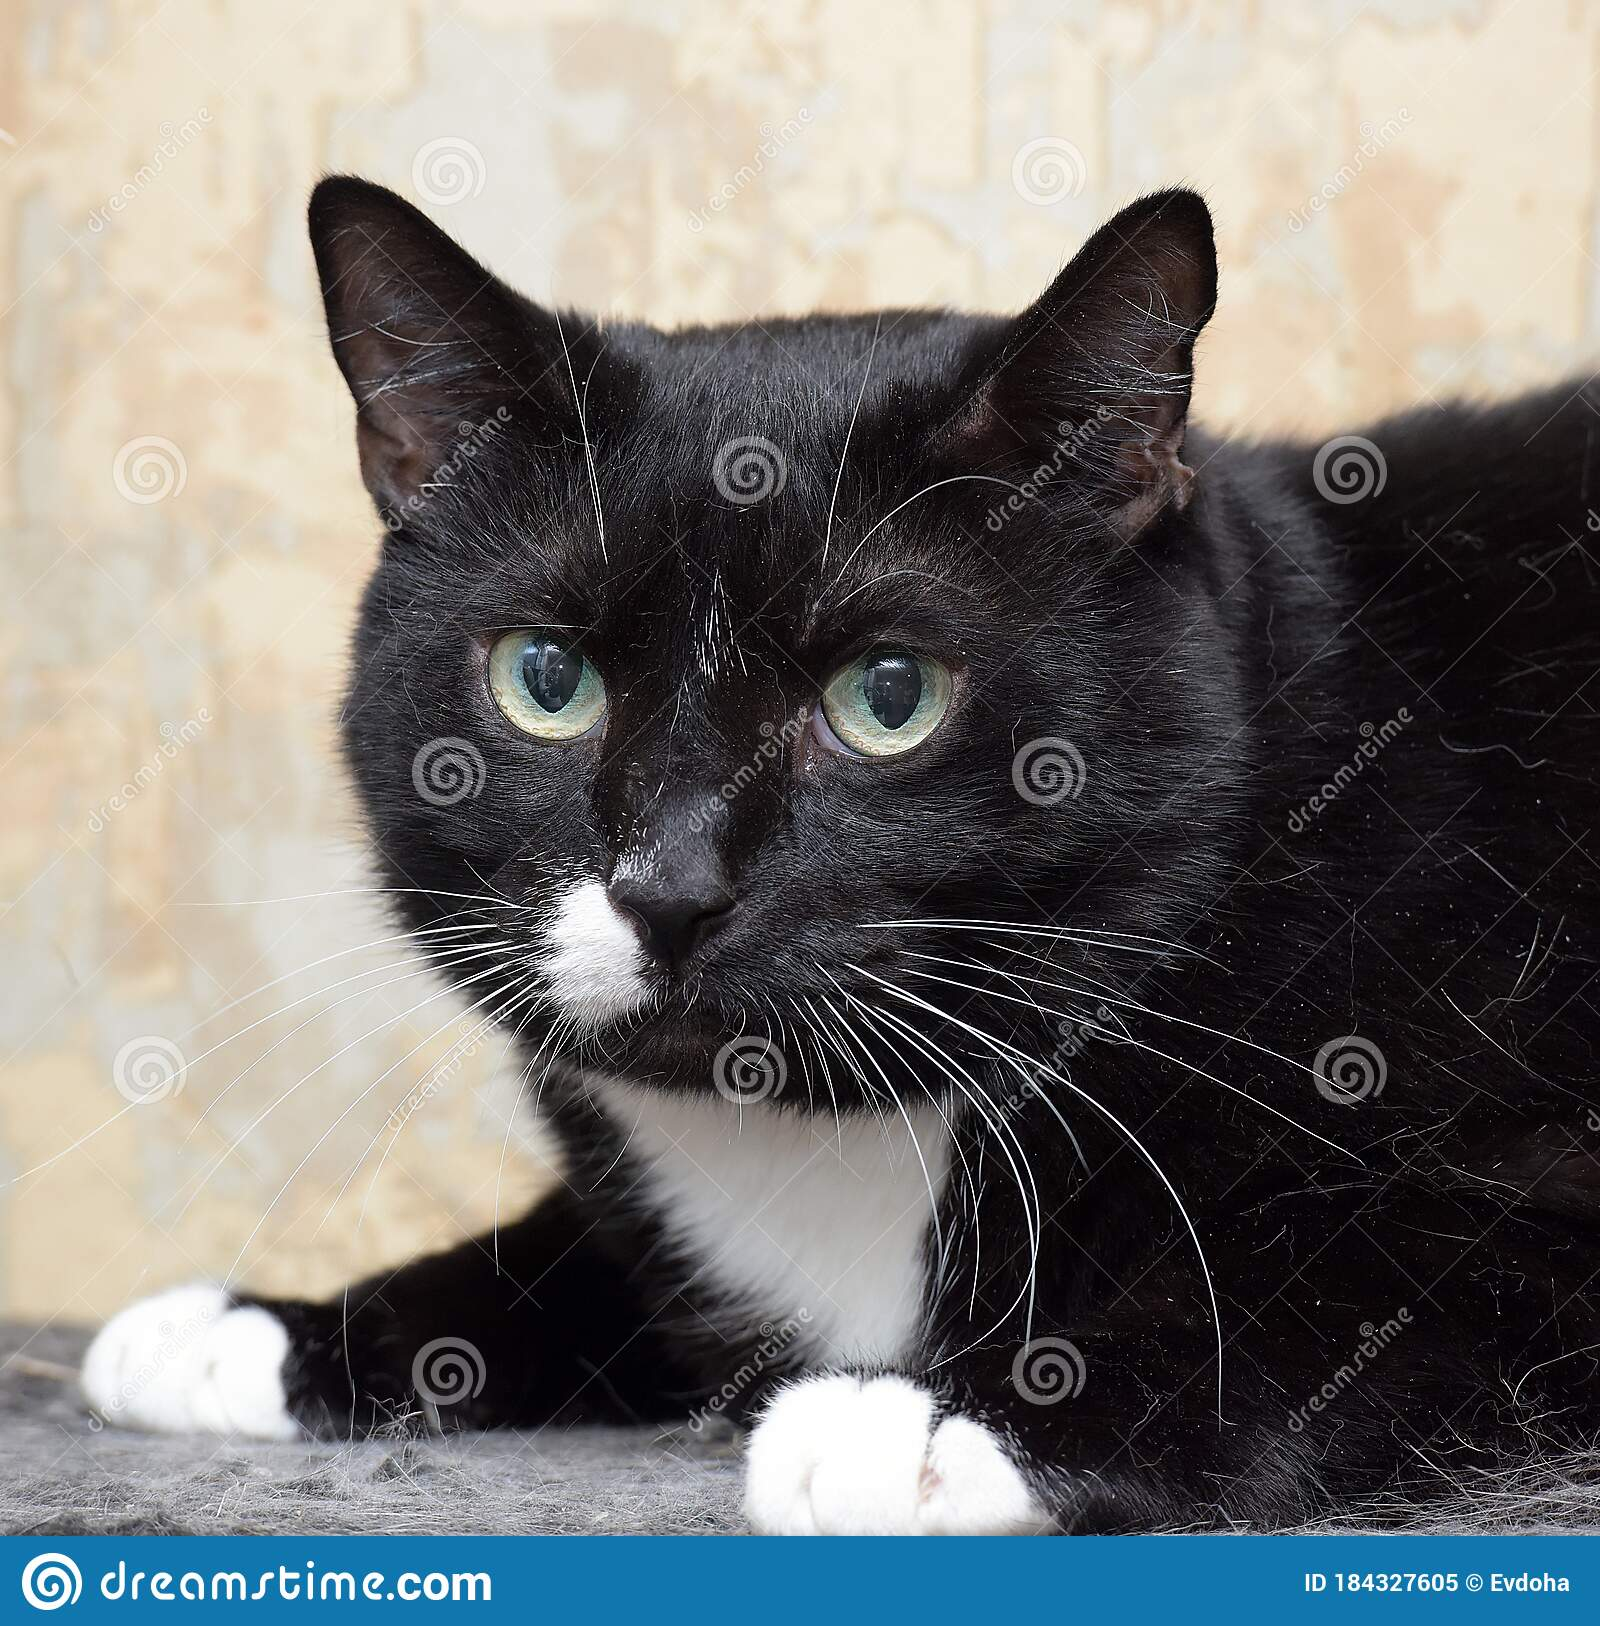 Black Cat With A White Spot On The Face Stock Image ...